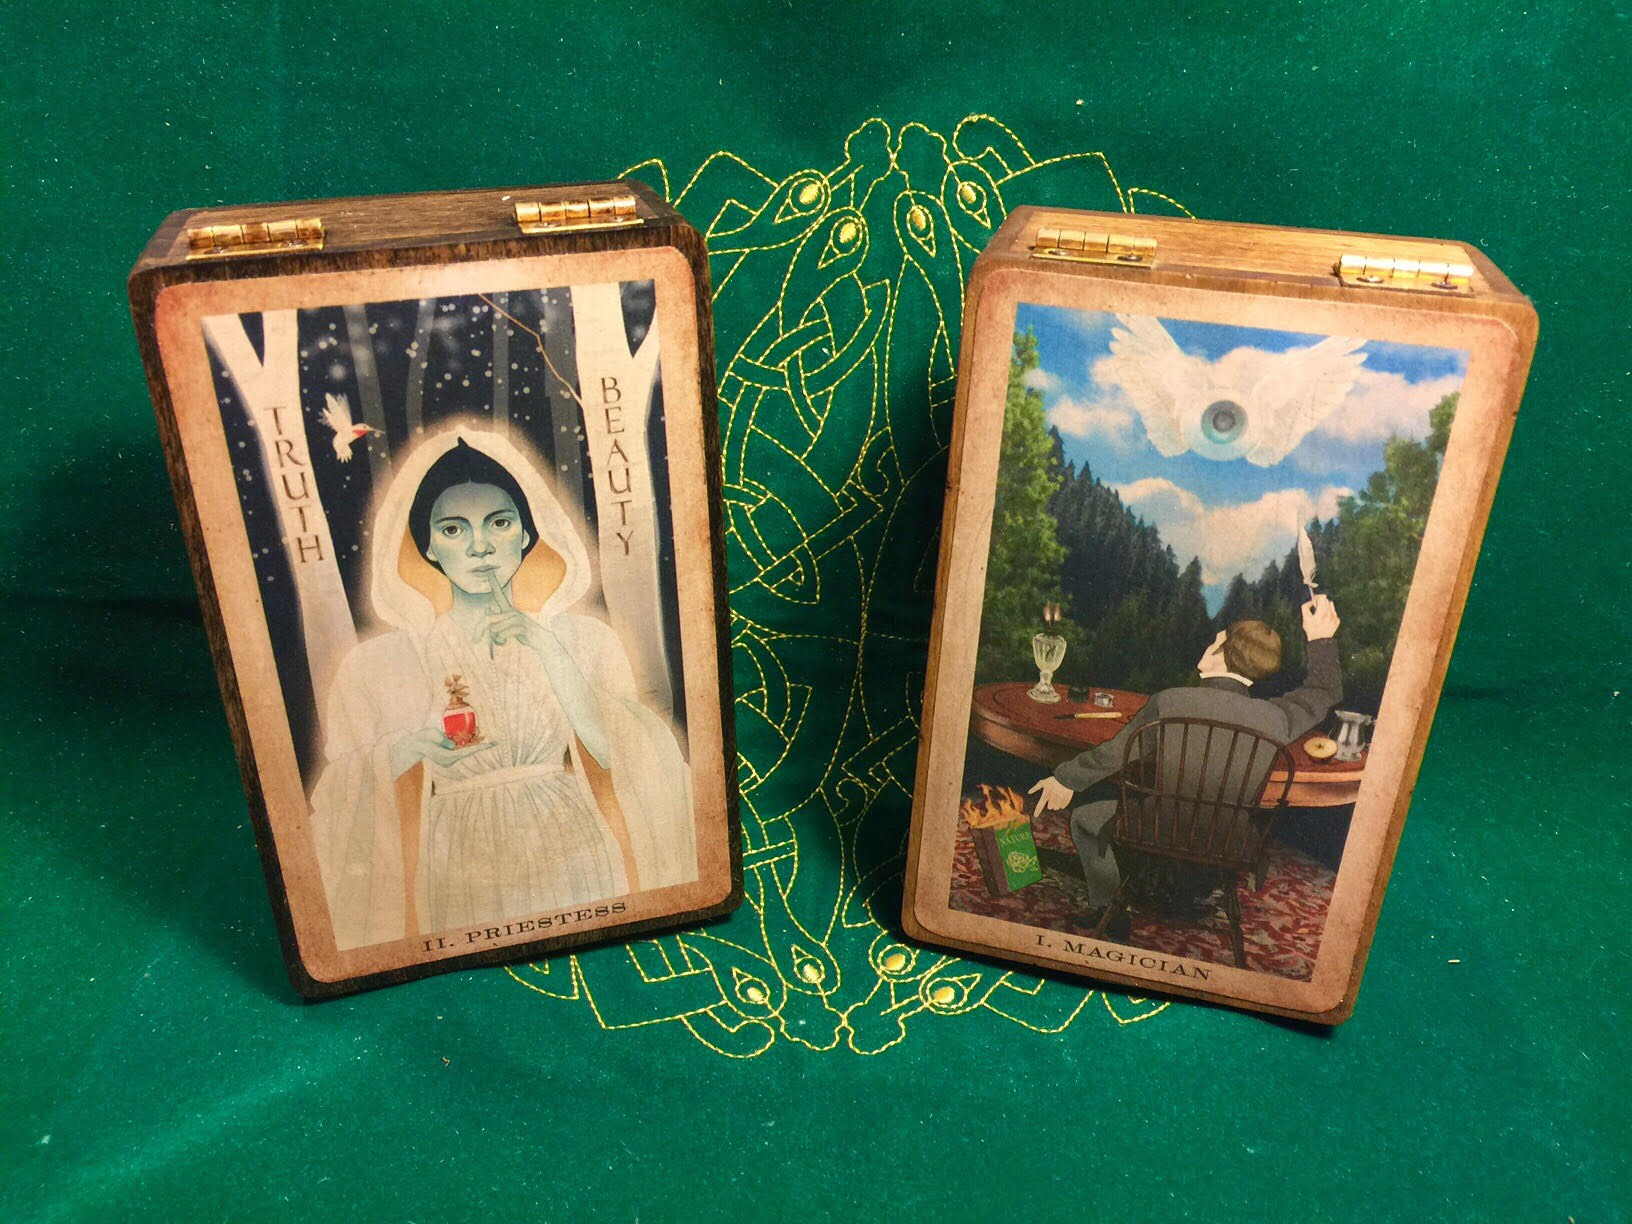 Handmade boxes of poplar wood featuring images from our deck